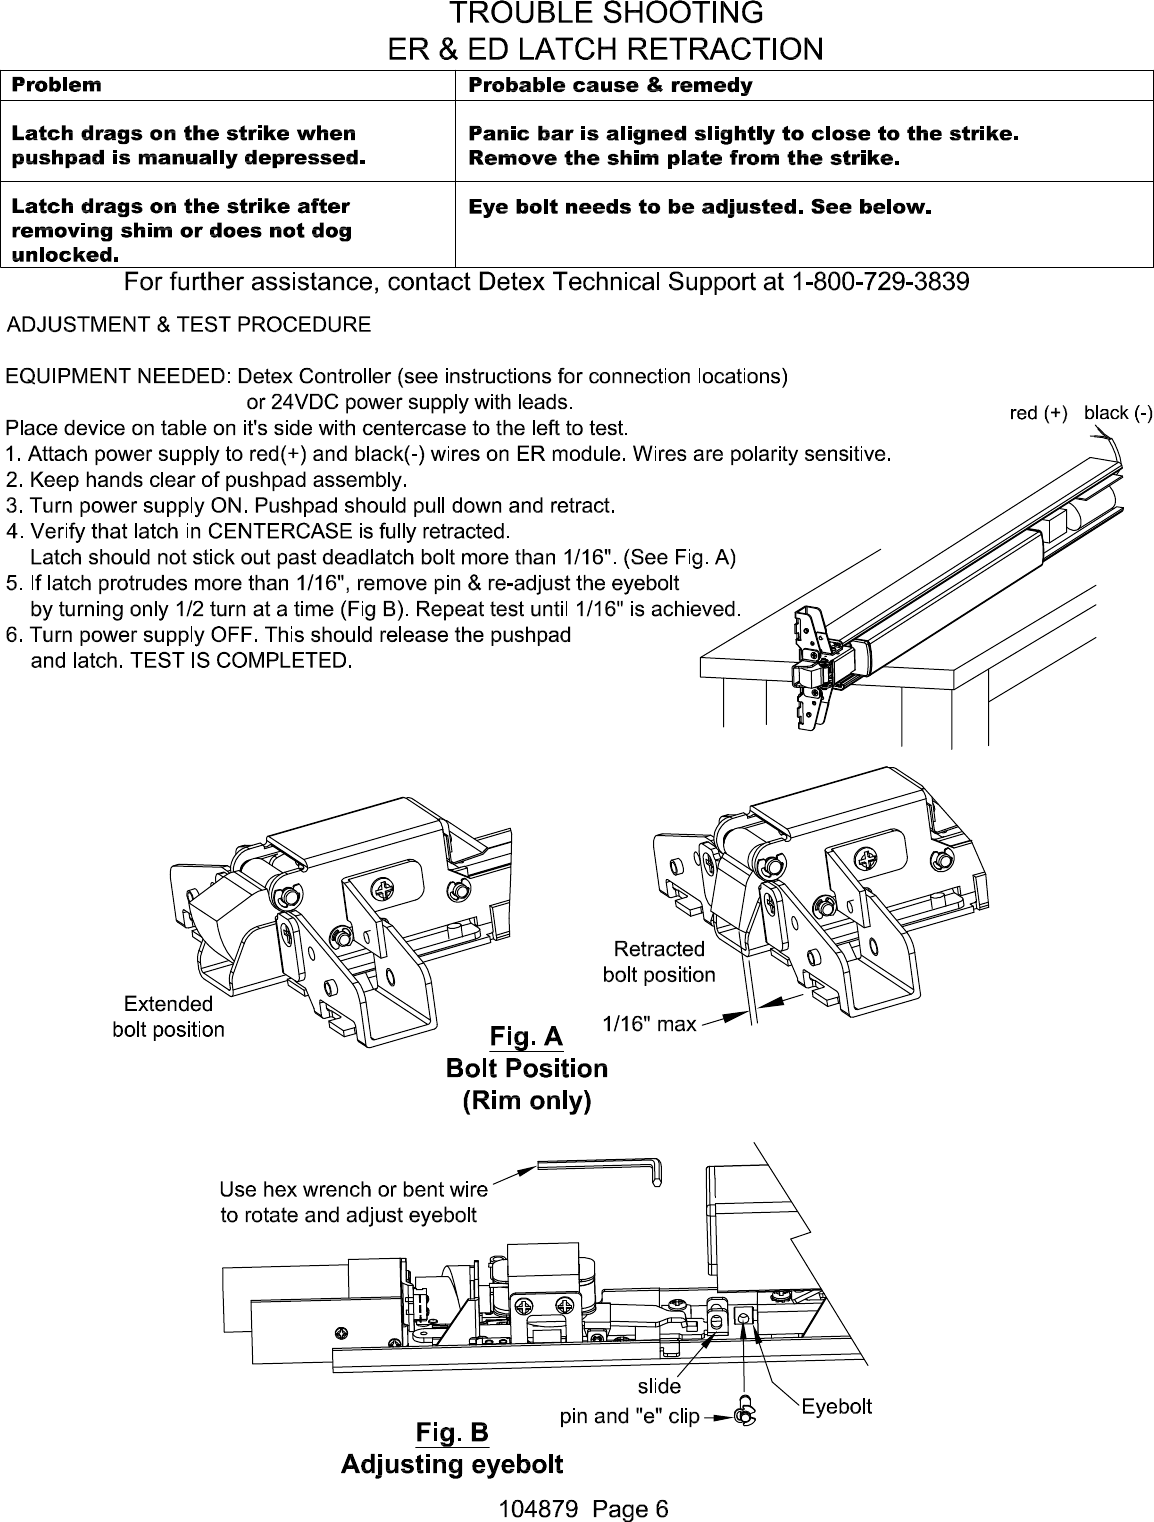 Detex R Electrical Instructions For Electric Dogging Latch Wiring Diagrams Page 6 Of 7 Retraction